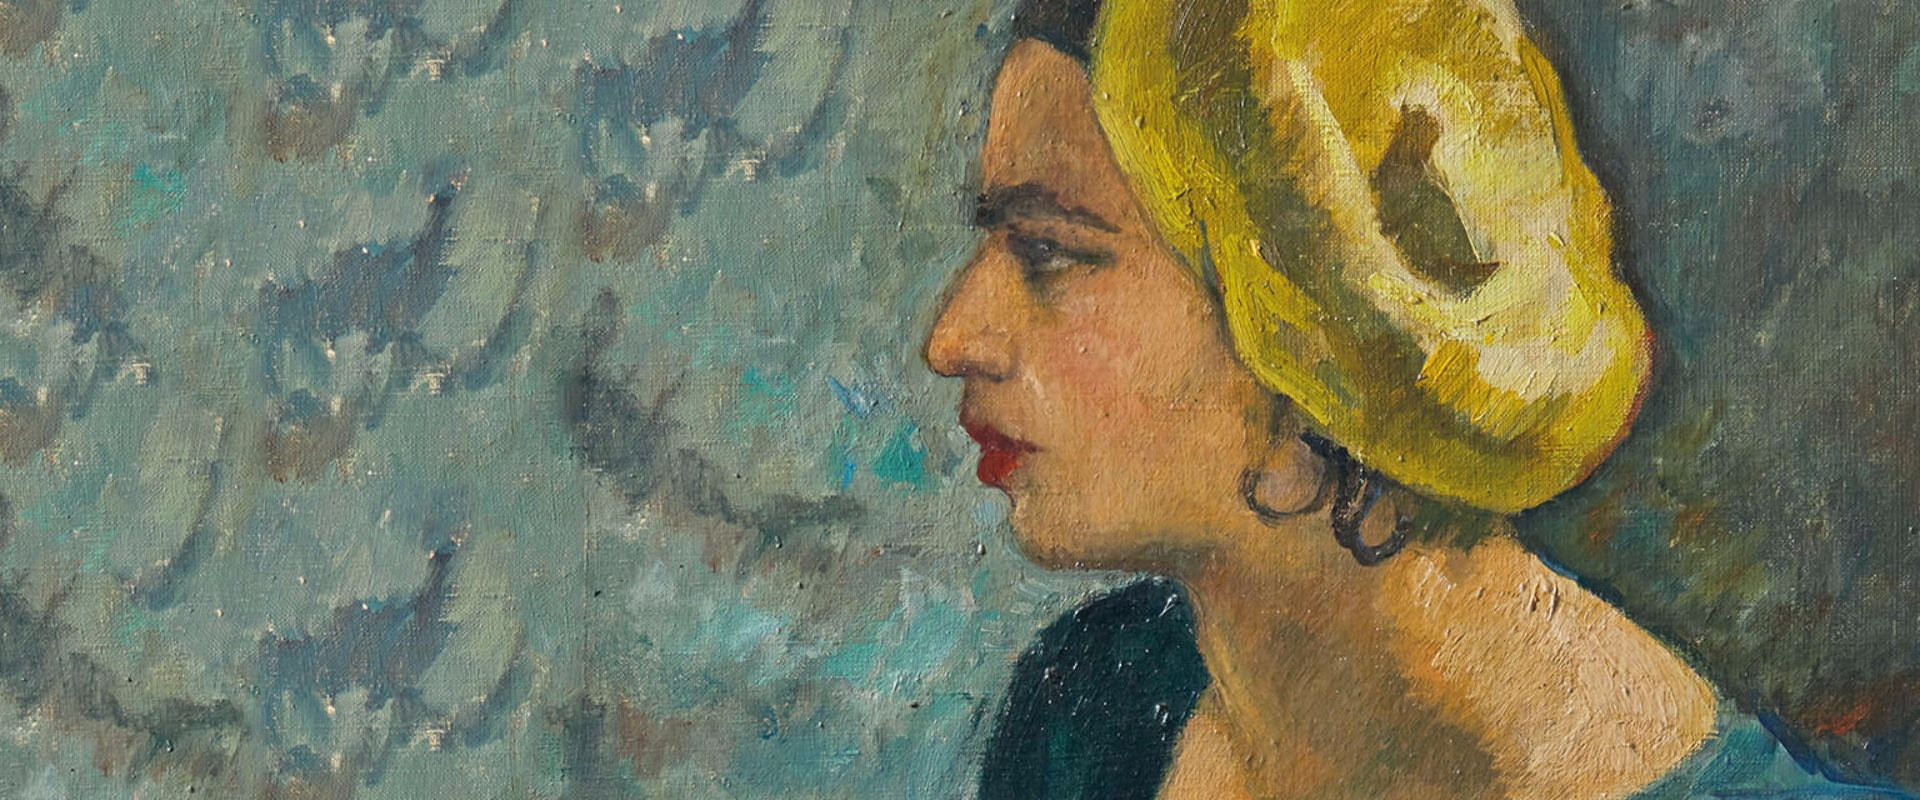 Amrita Sher-Gil Artworks Collection | Buy Posters, Frames, Canvas, Digital Art & Large Size Prints Of The Famous Modern Master's Artworks